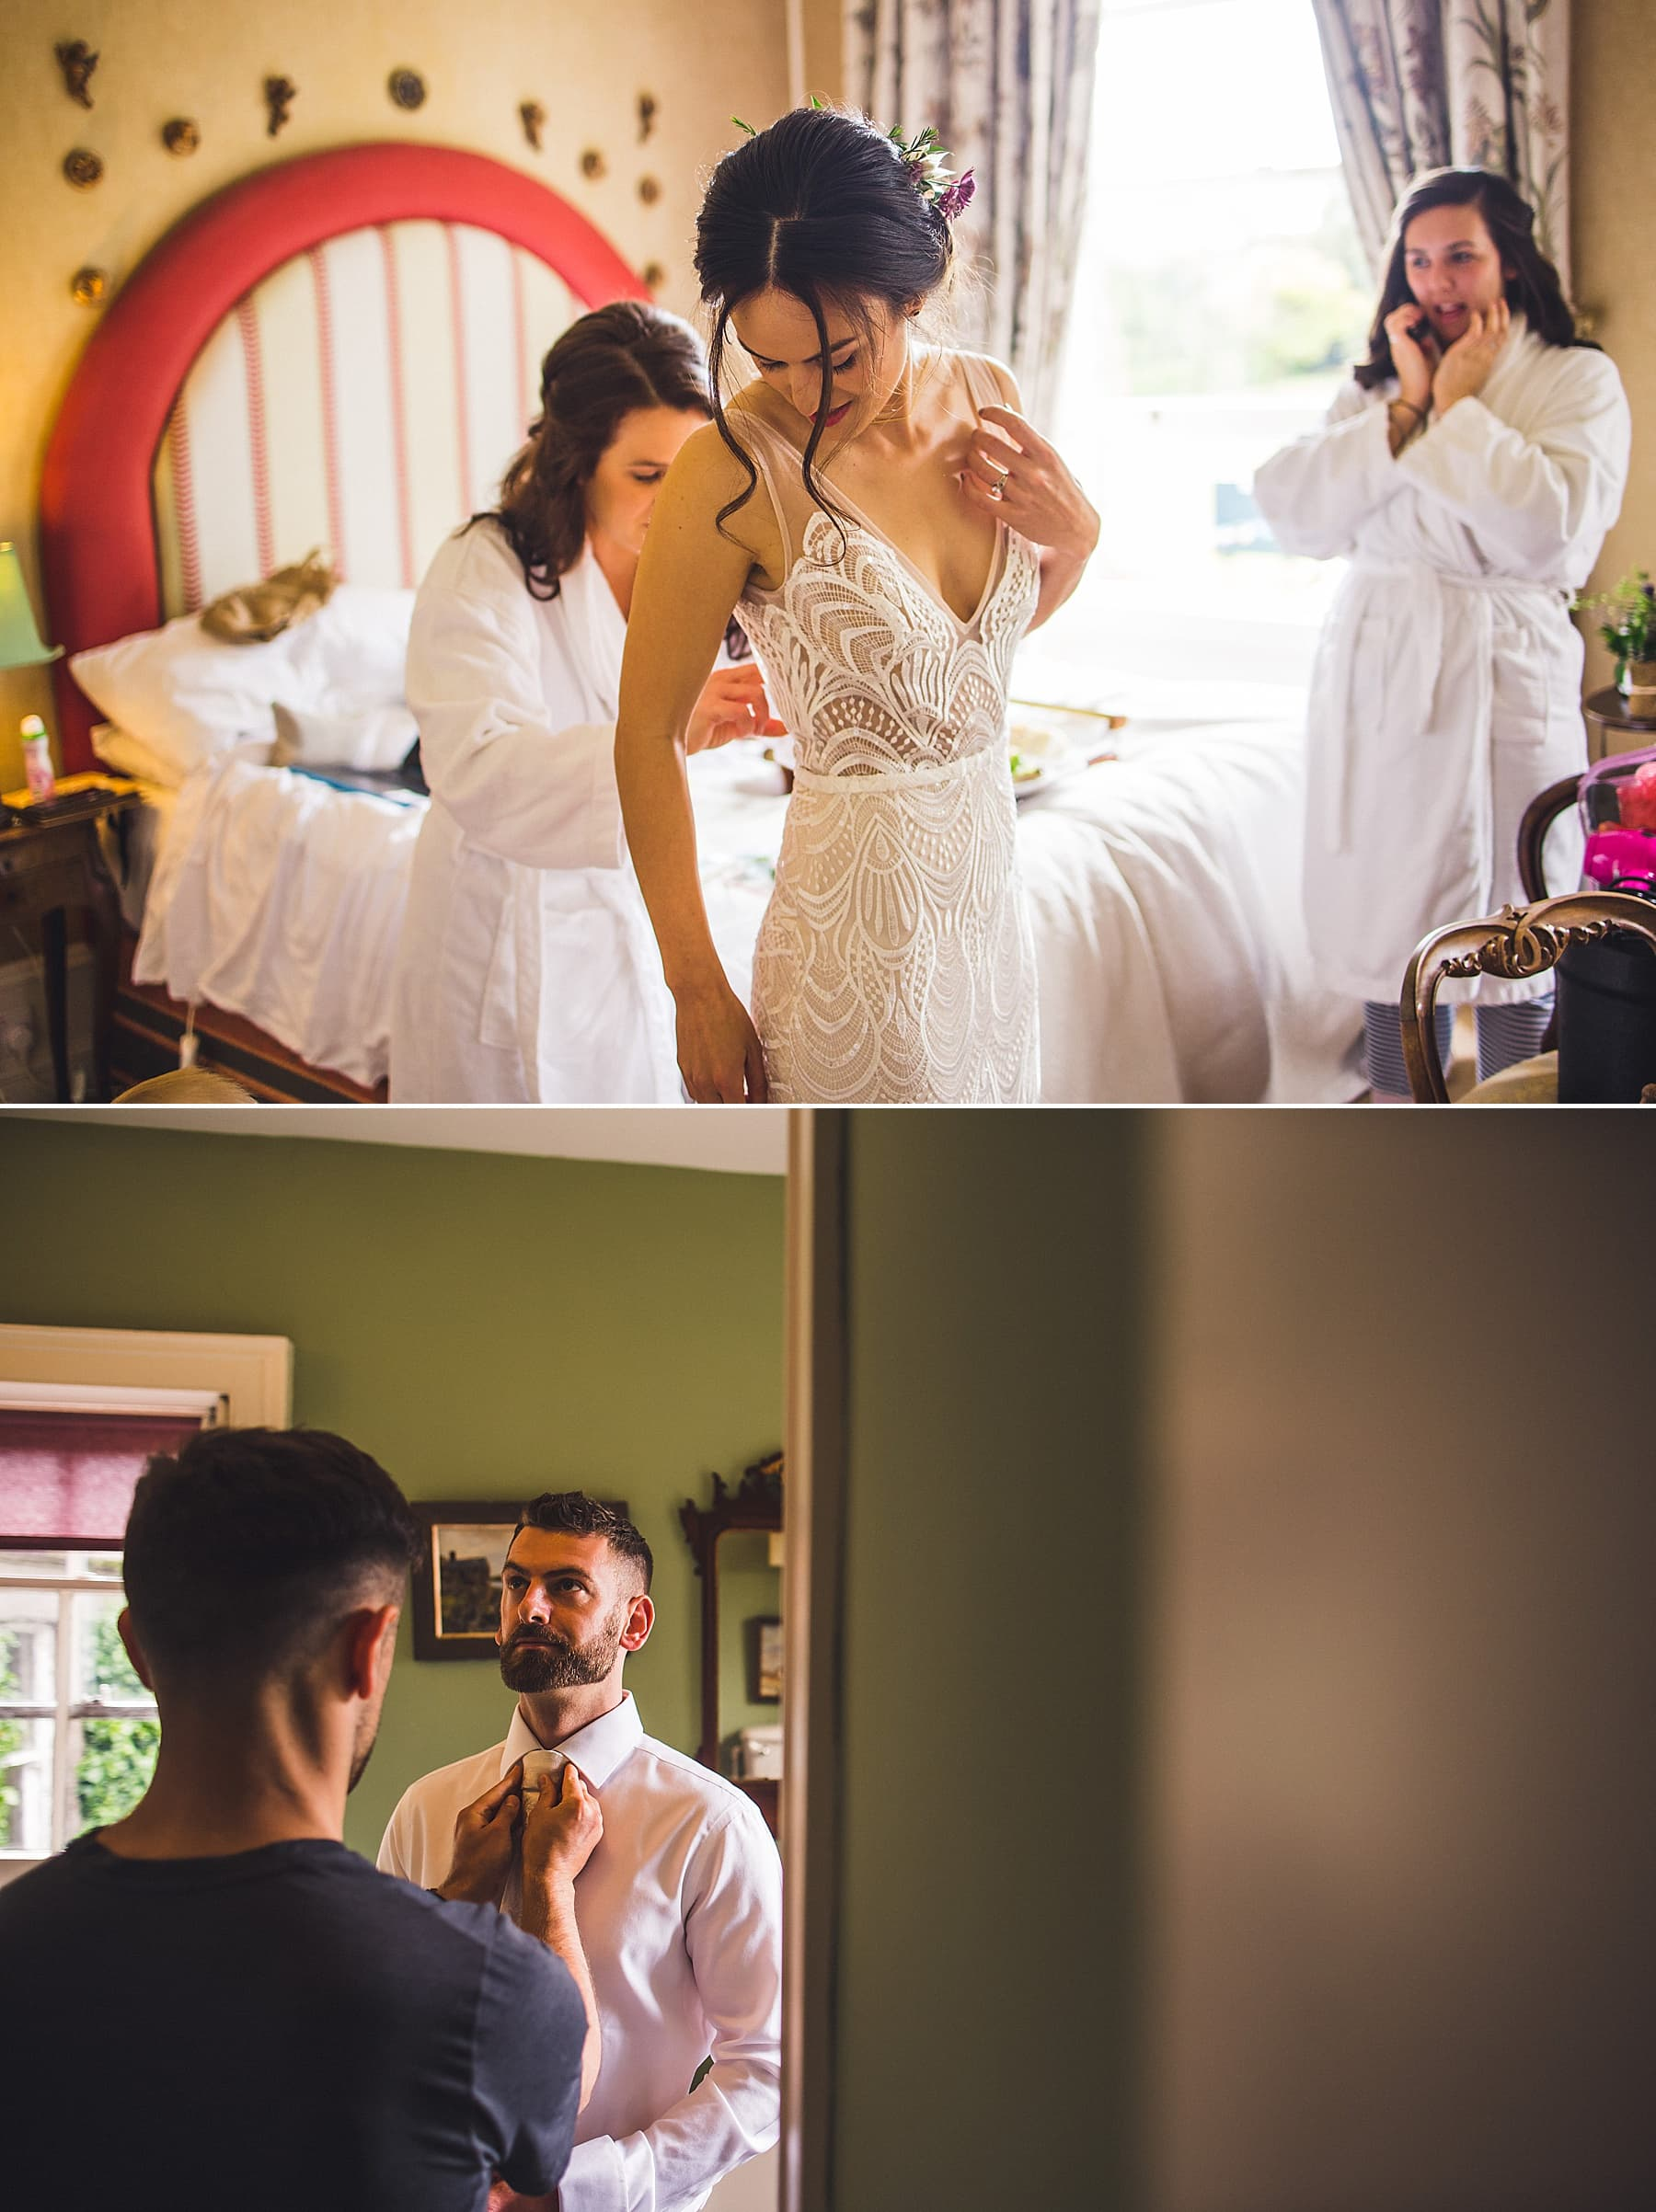 Ballyvolane House,Co. Cork Wedding Photographer,Navyblur Photography,